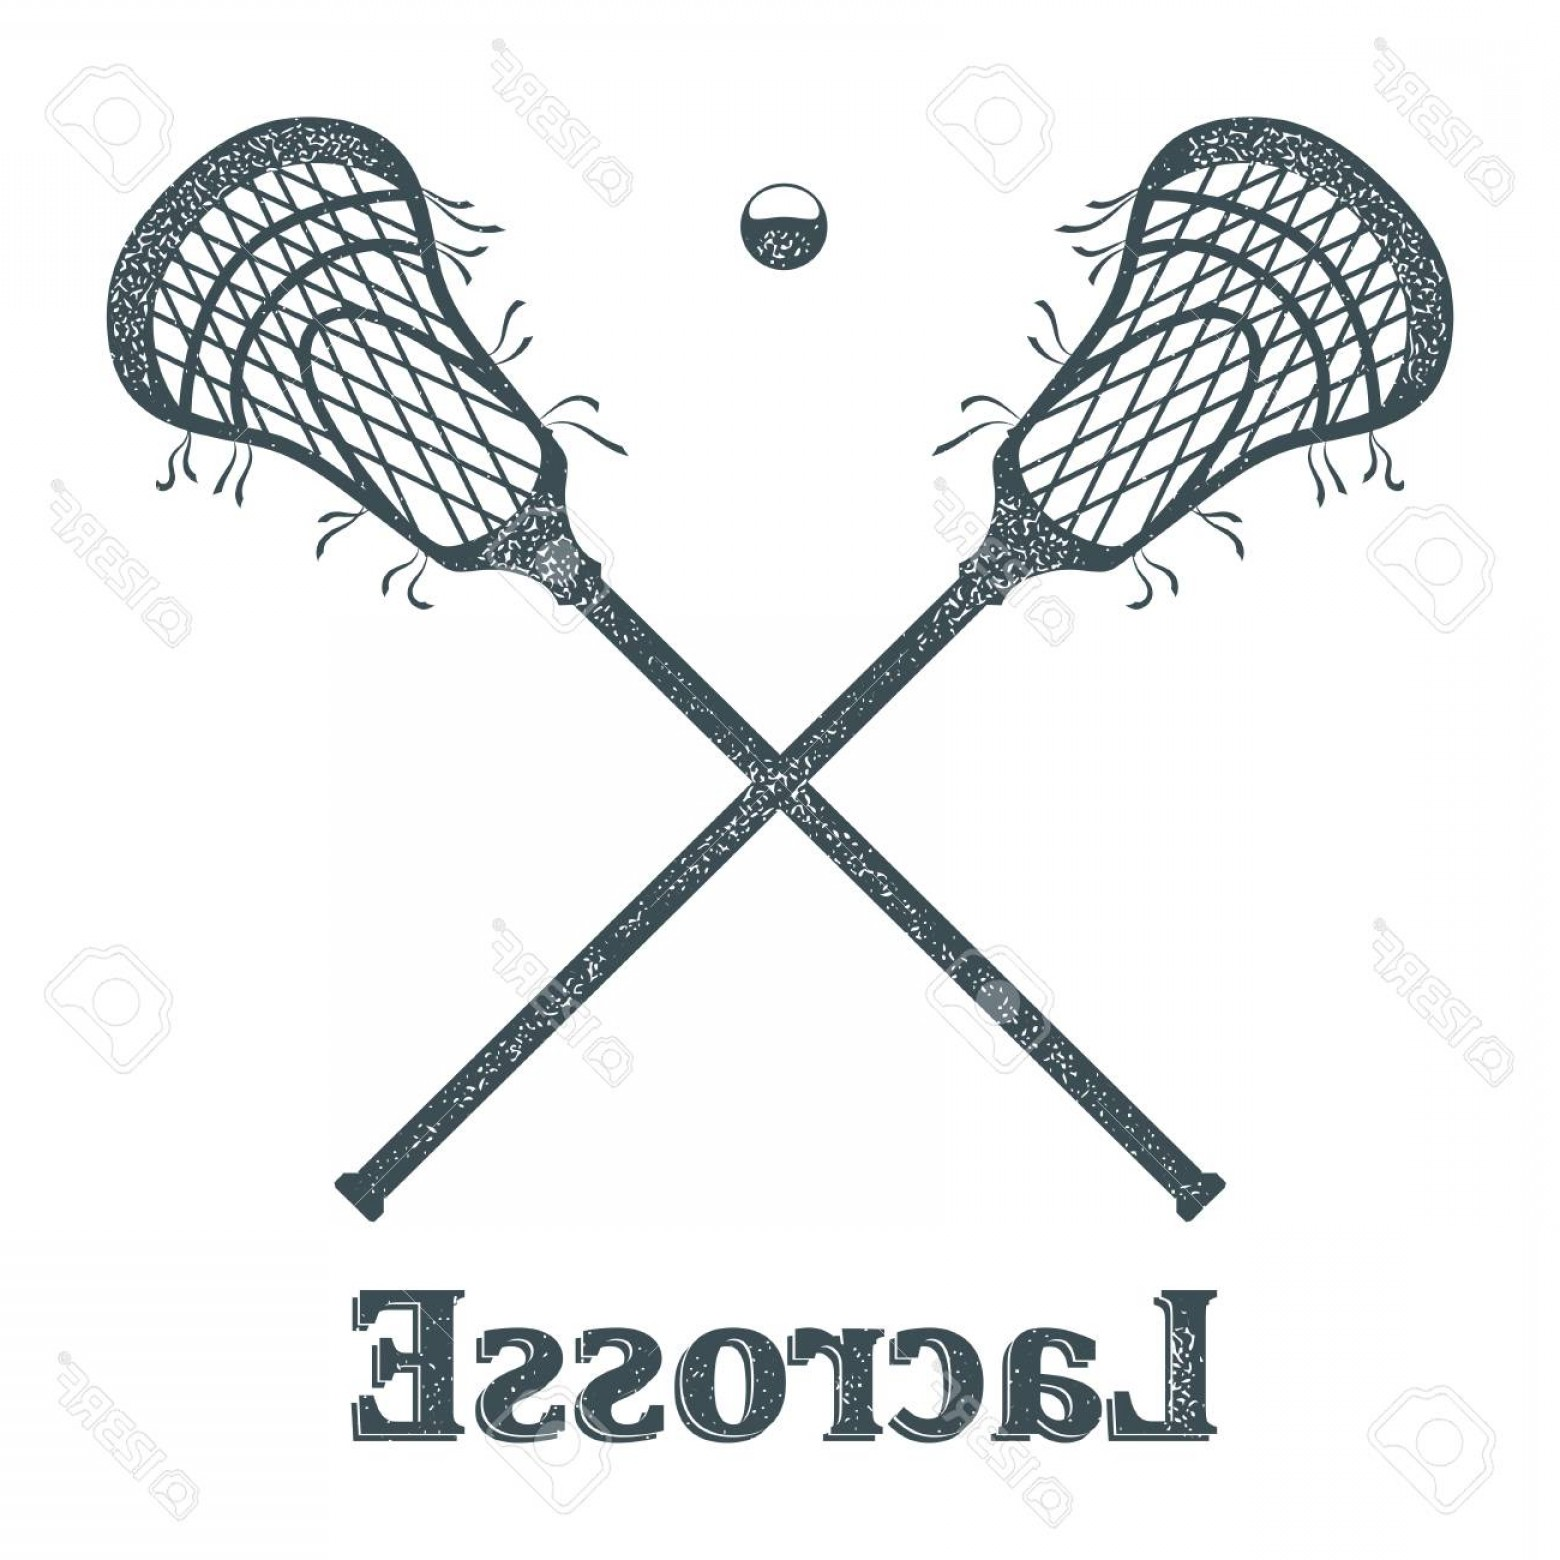 Lacrosse Stick Vector: Photostock Vector Crossed Lacrosse Stick And Ball With Grunge Texture On White Background Objects Sports Club Symbol S